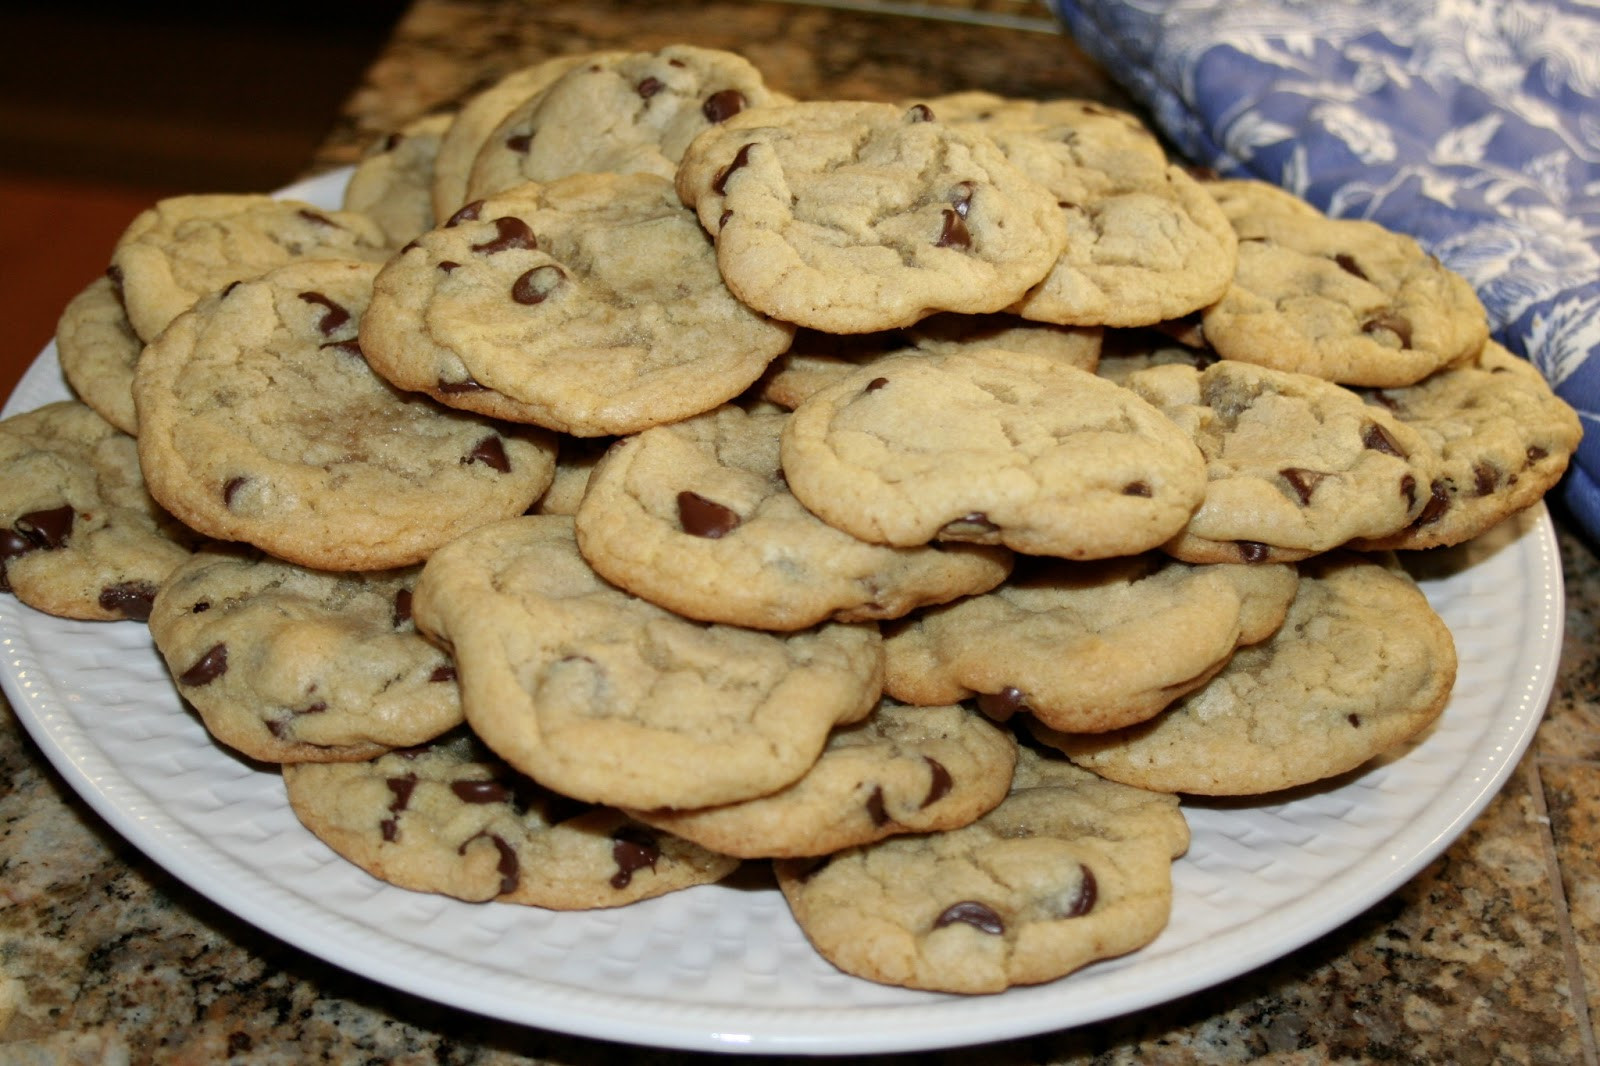 Soft Chewy Chocolate Chip Cookies  Home Trends Utah Soft Chewy Chocolate Chip Cookies made